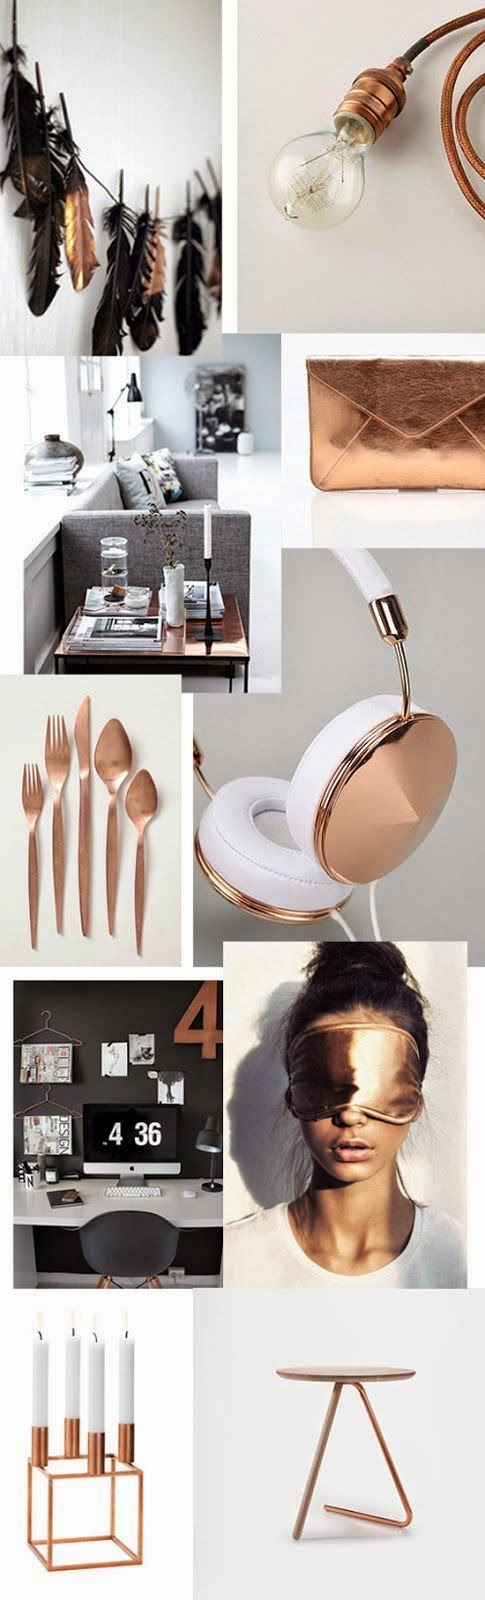 tendencia-decoracao-cobre